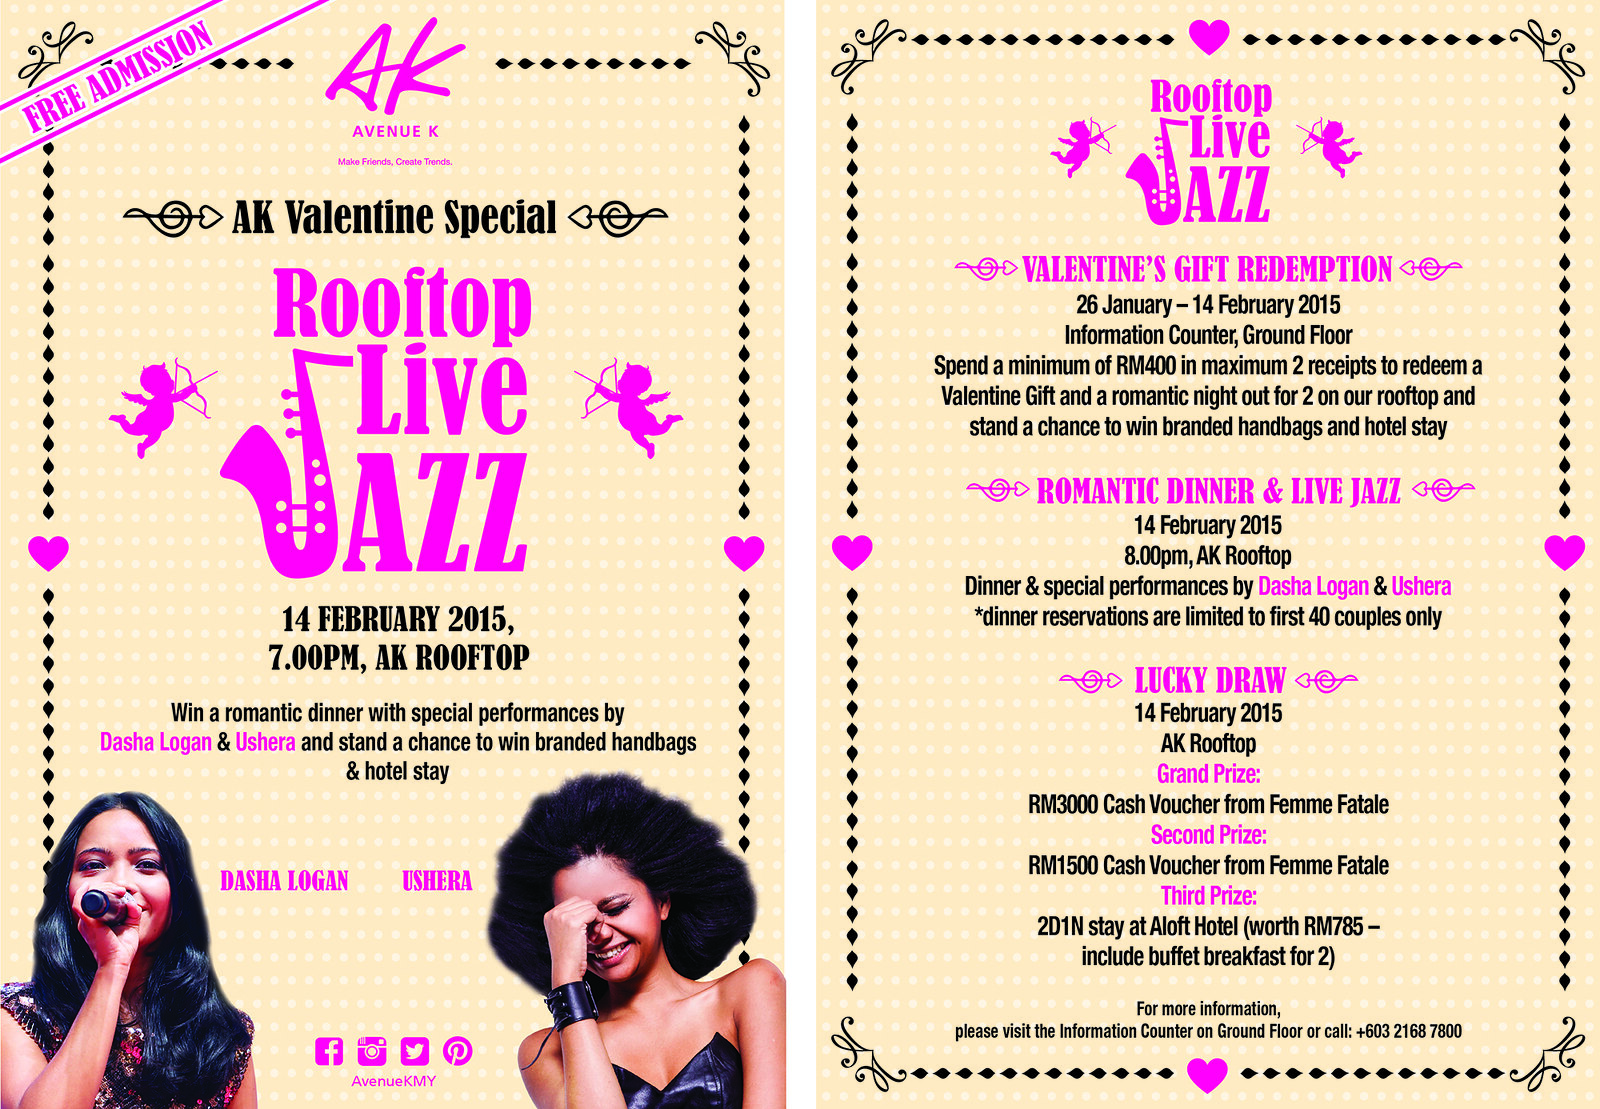 ROOFTOP LIVE JAZZ @ AVENUE K. AK'S Valentine's Special Celebrates Love for All